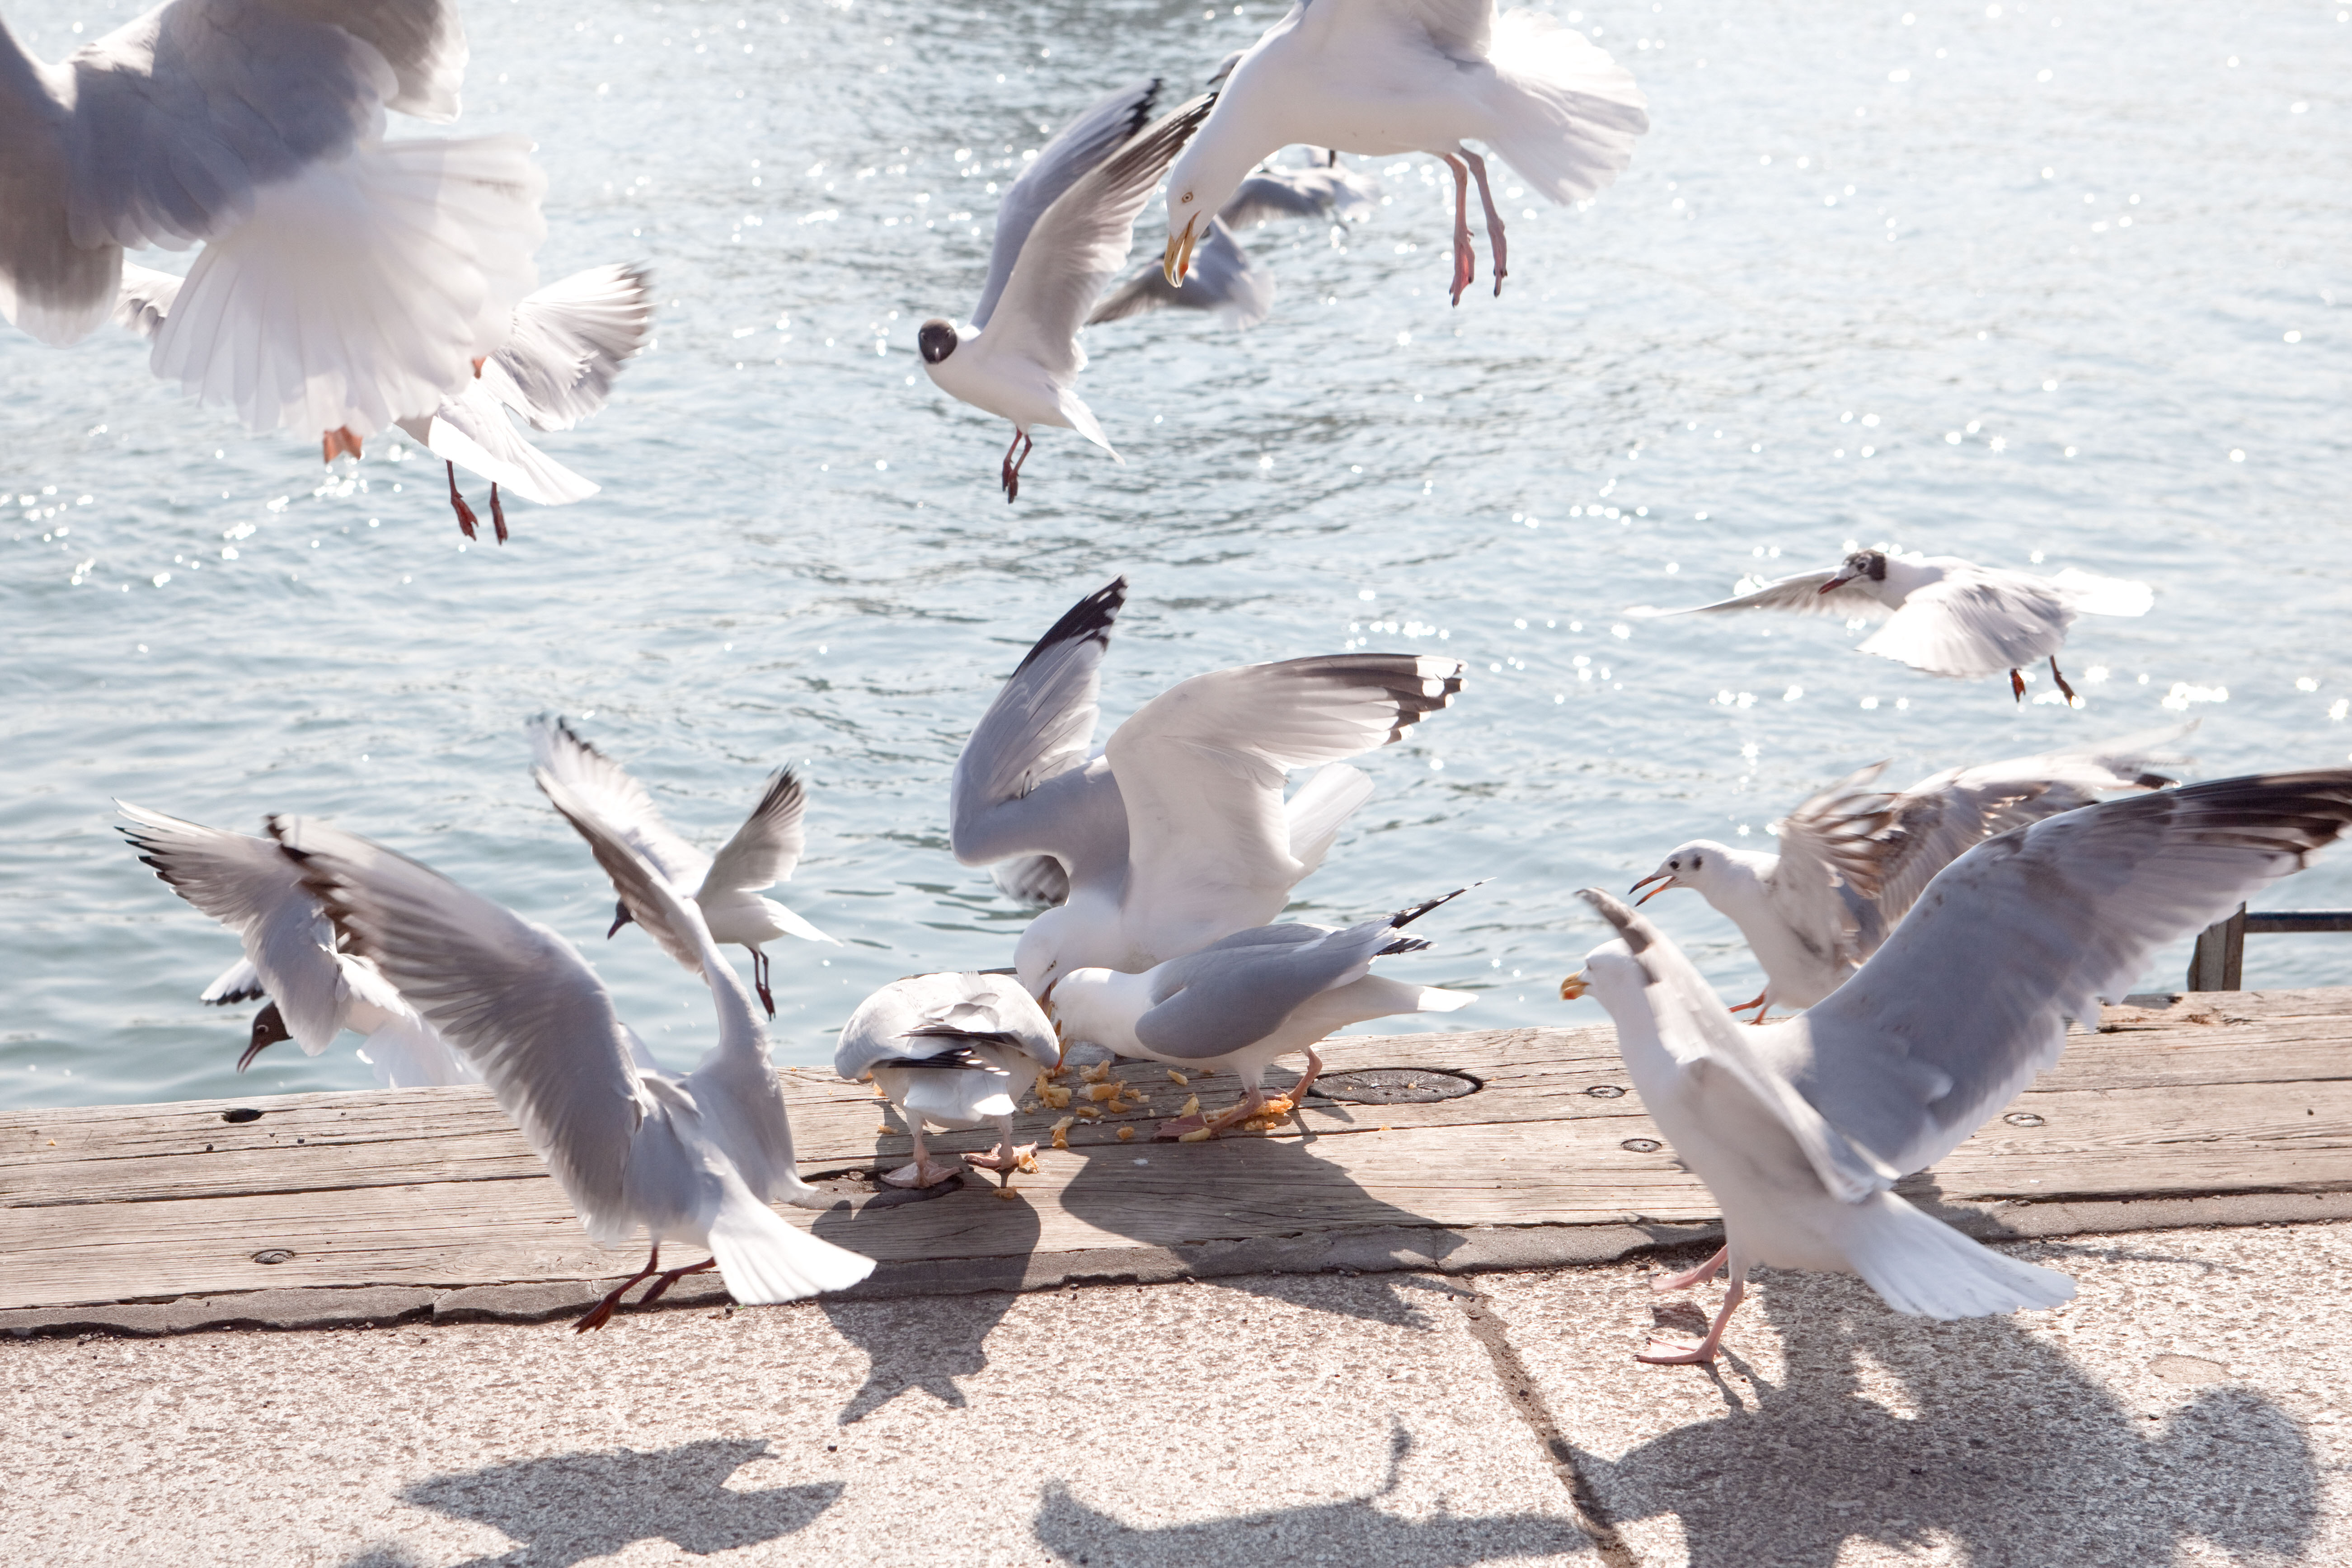 Revealed: How to stop seagulls from stealing your chips